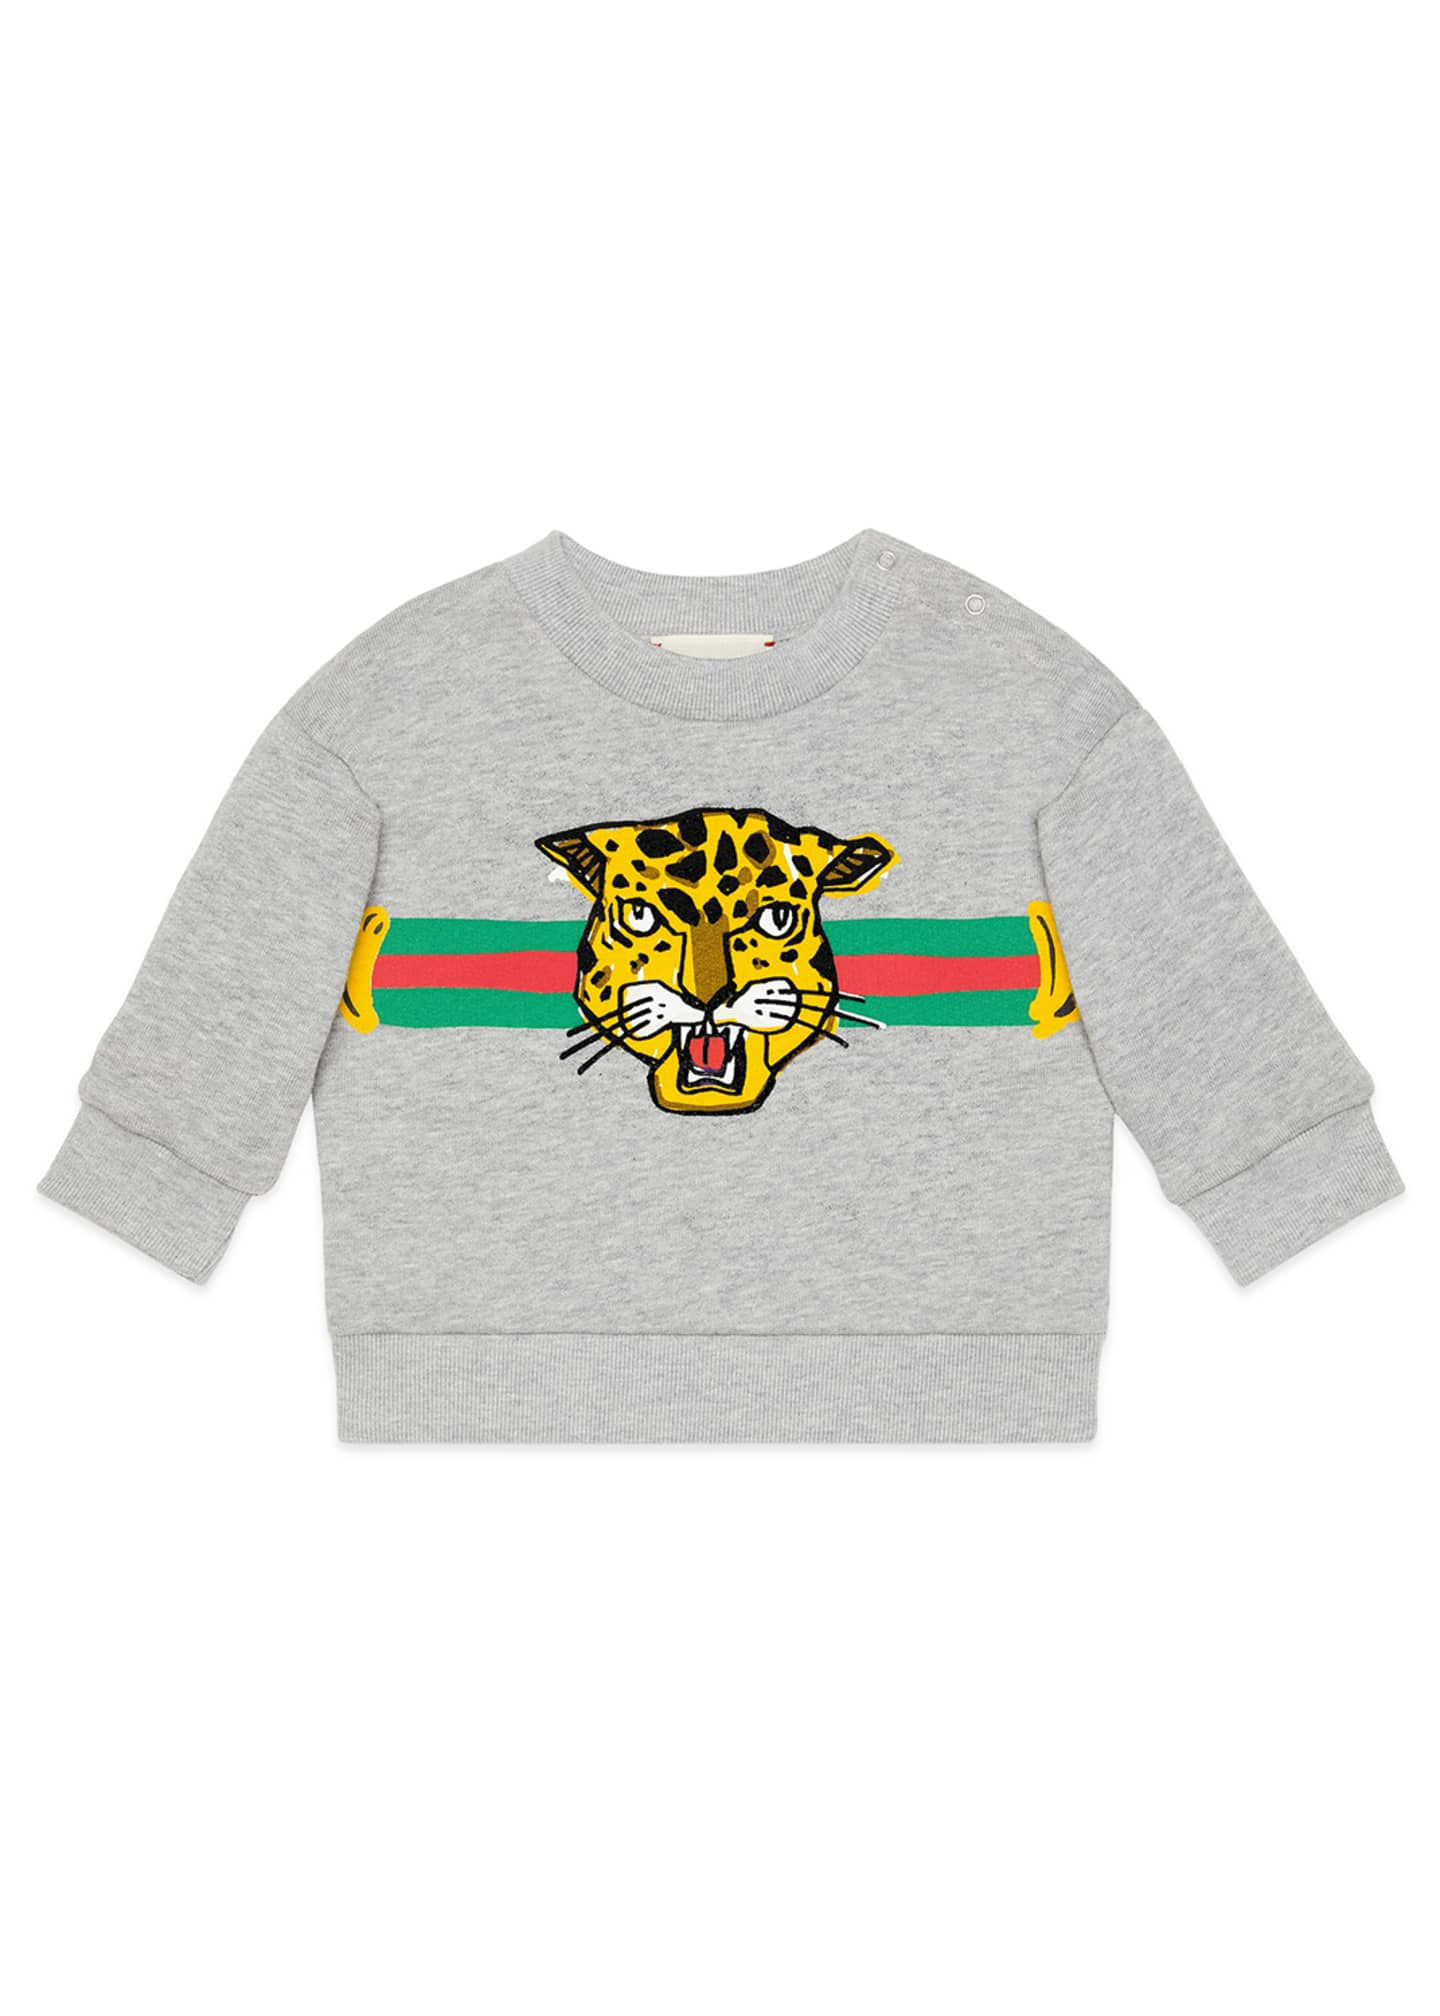 Gucci Boys' Cat Graphic Crewneck Sweatshirt, Size 12-36